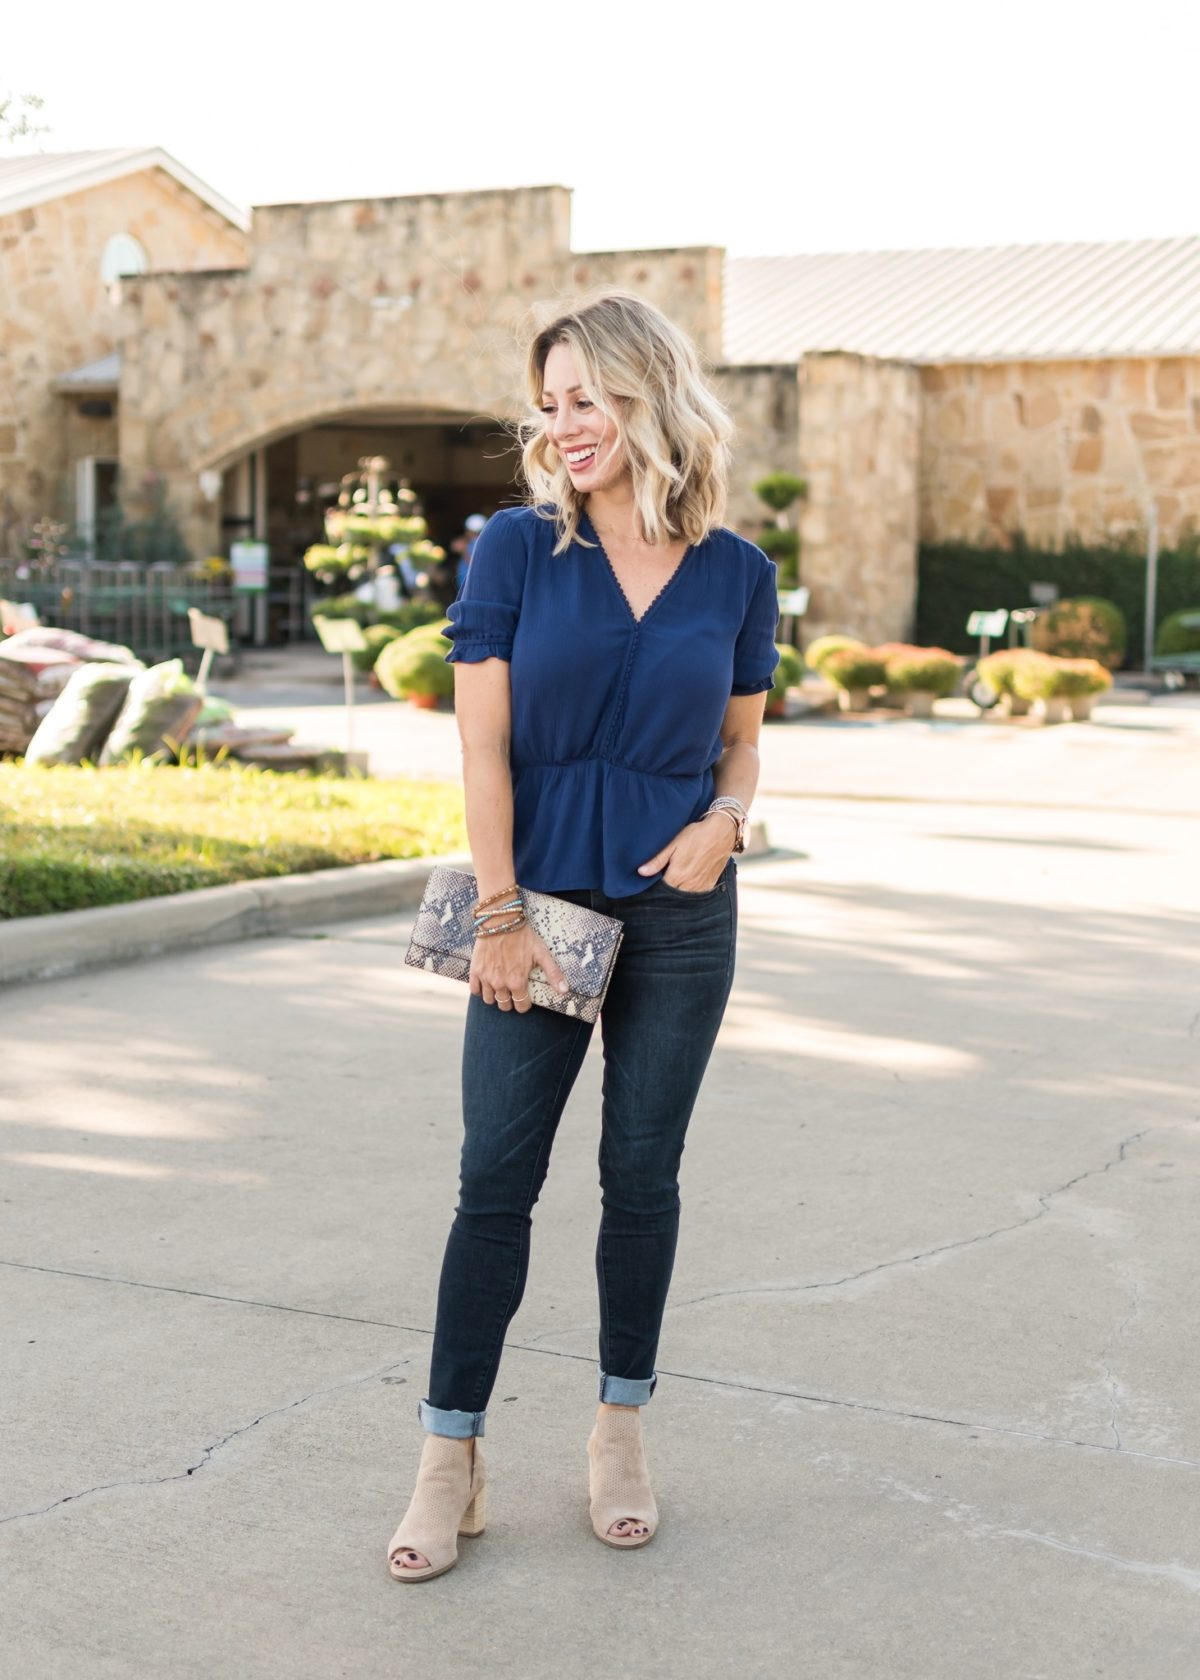 Nordstrom Top and Jeans